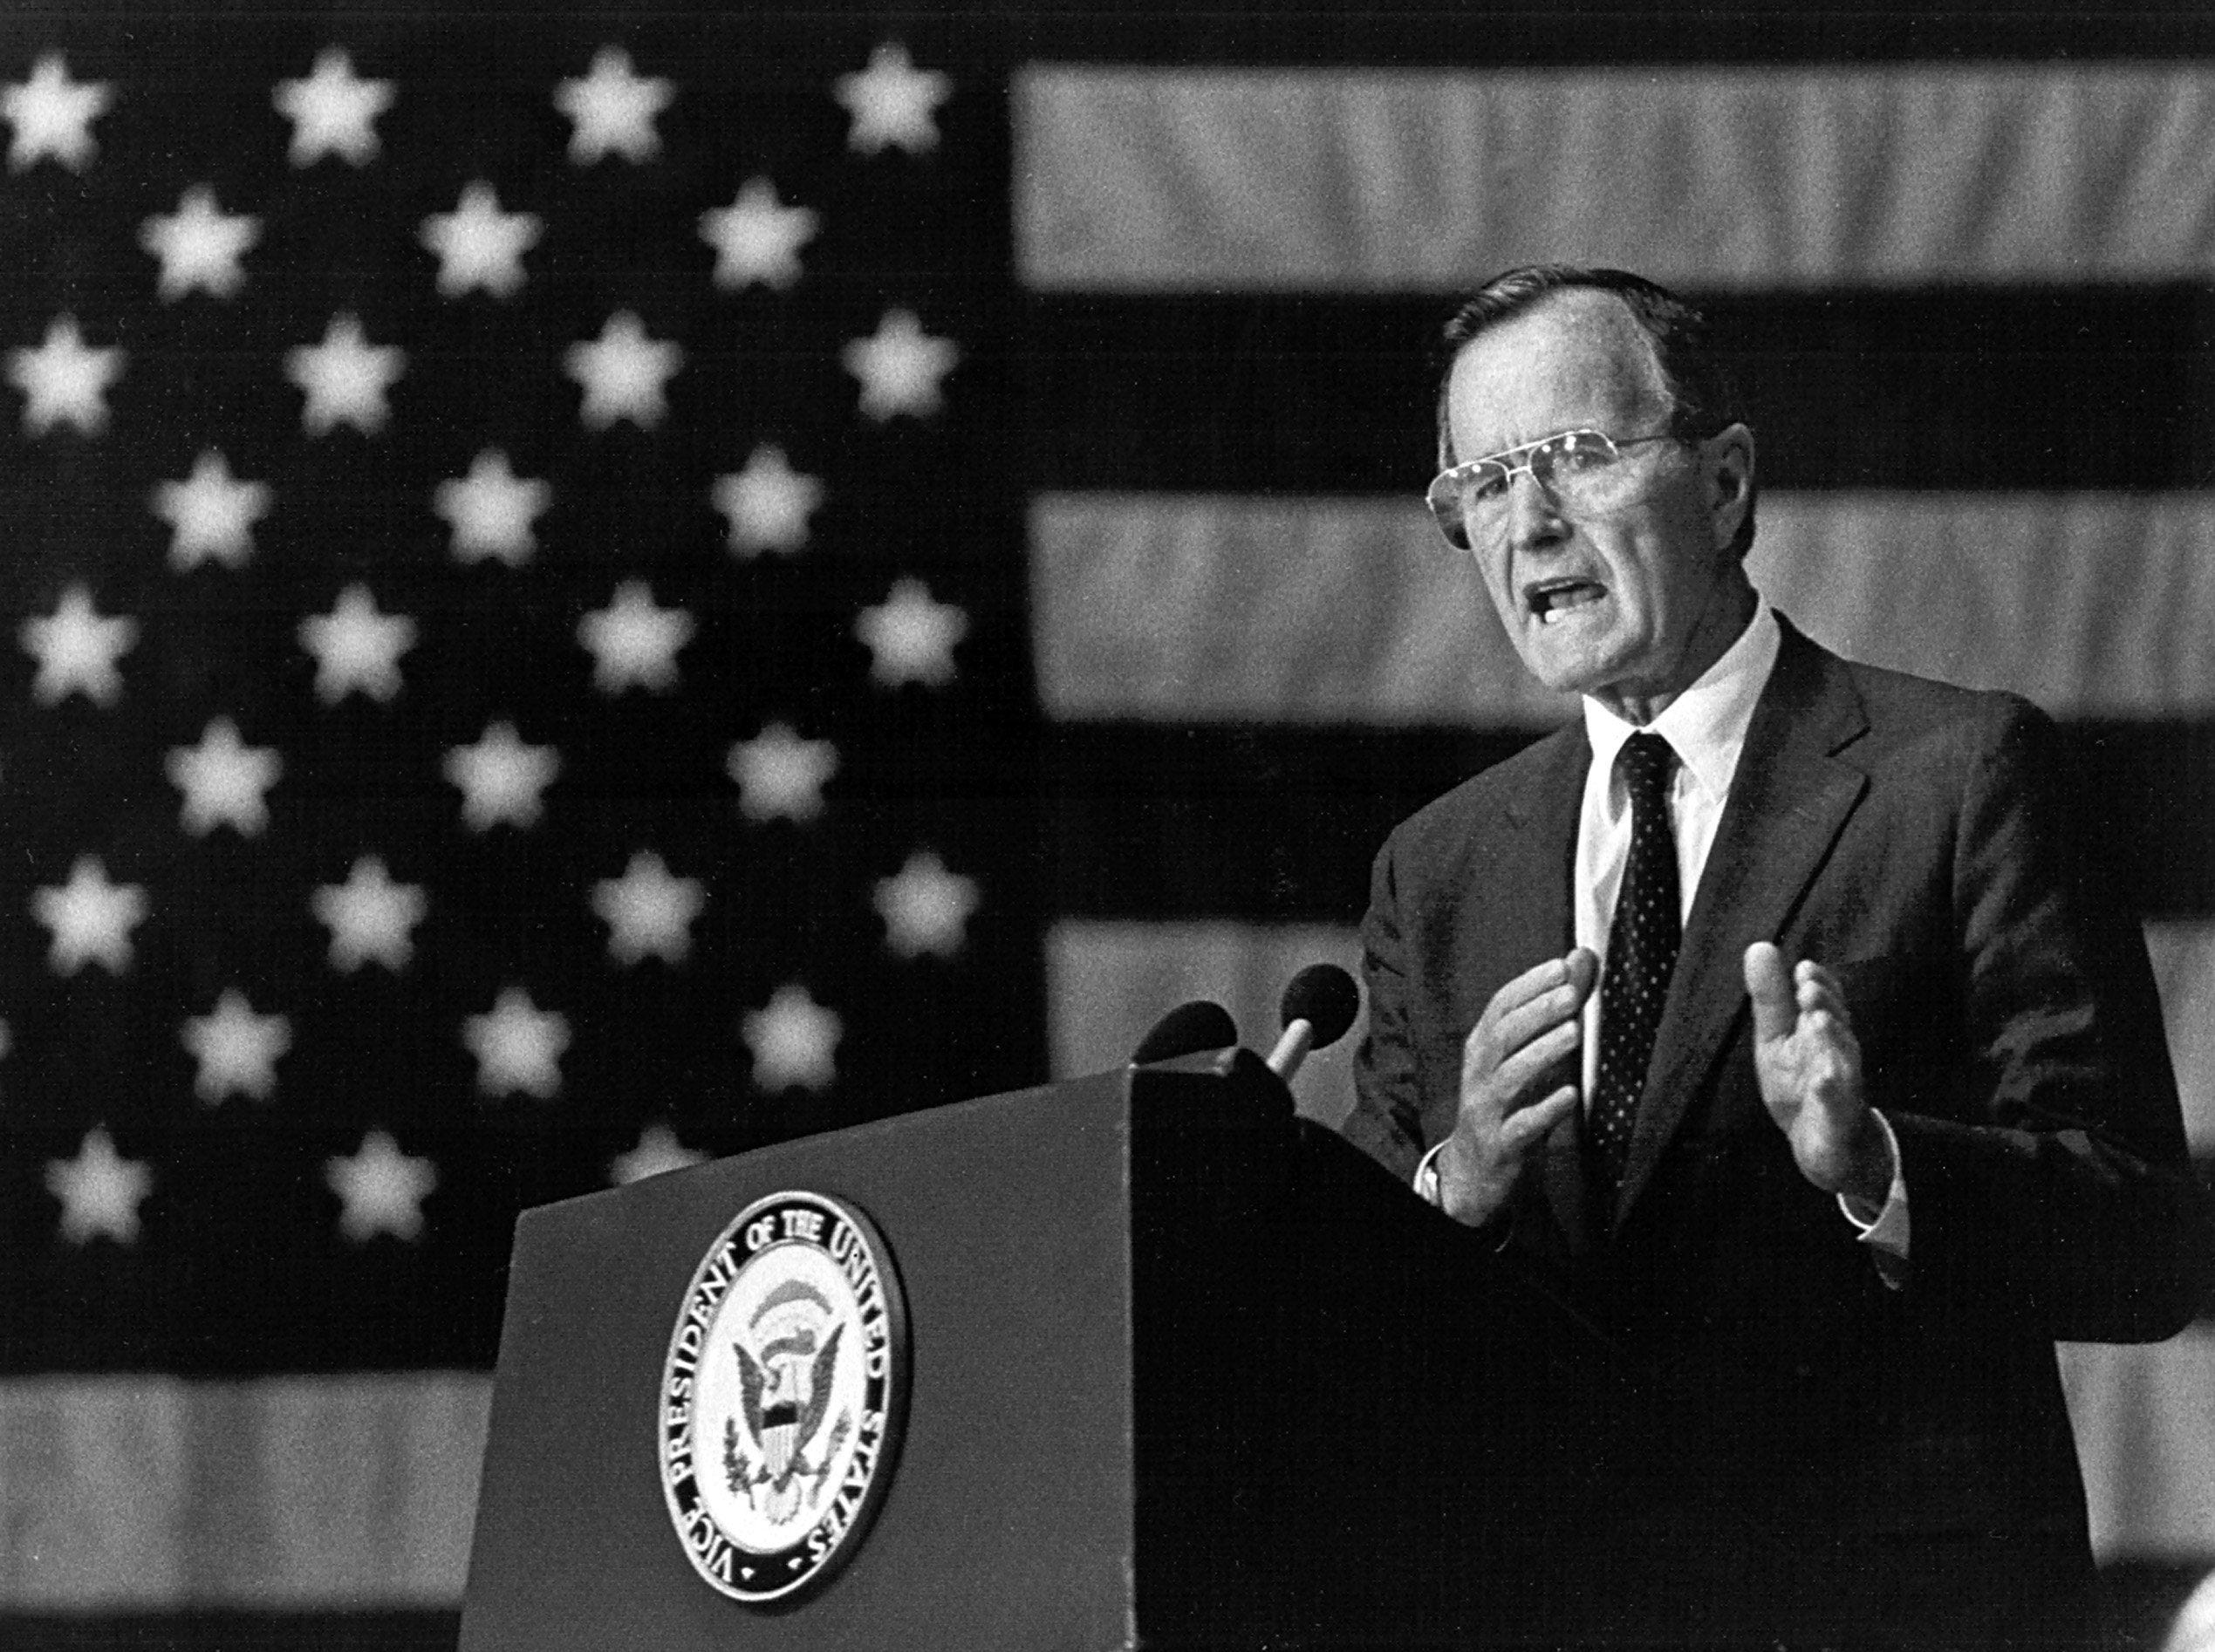 Vice President George H.W. Bush addresses the annual meeting of the Delta Council at the Walter Sillers Coliseum at Delta State University in Cleveland, MS on May 30, 1984.